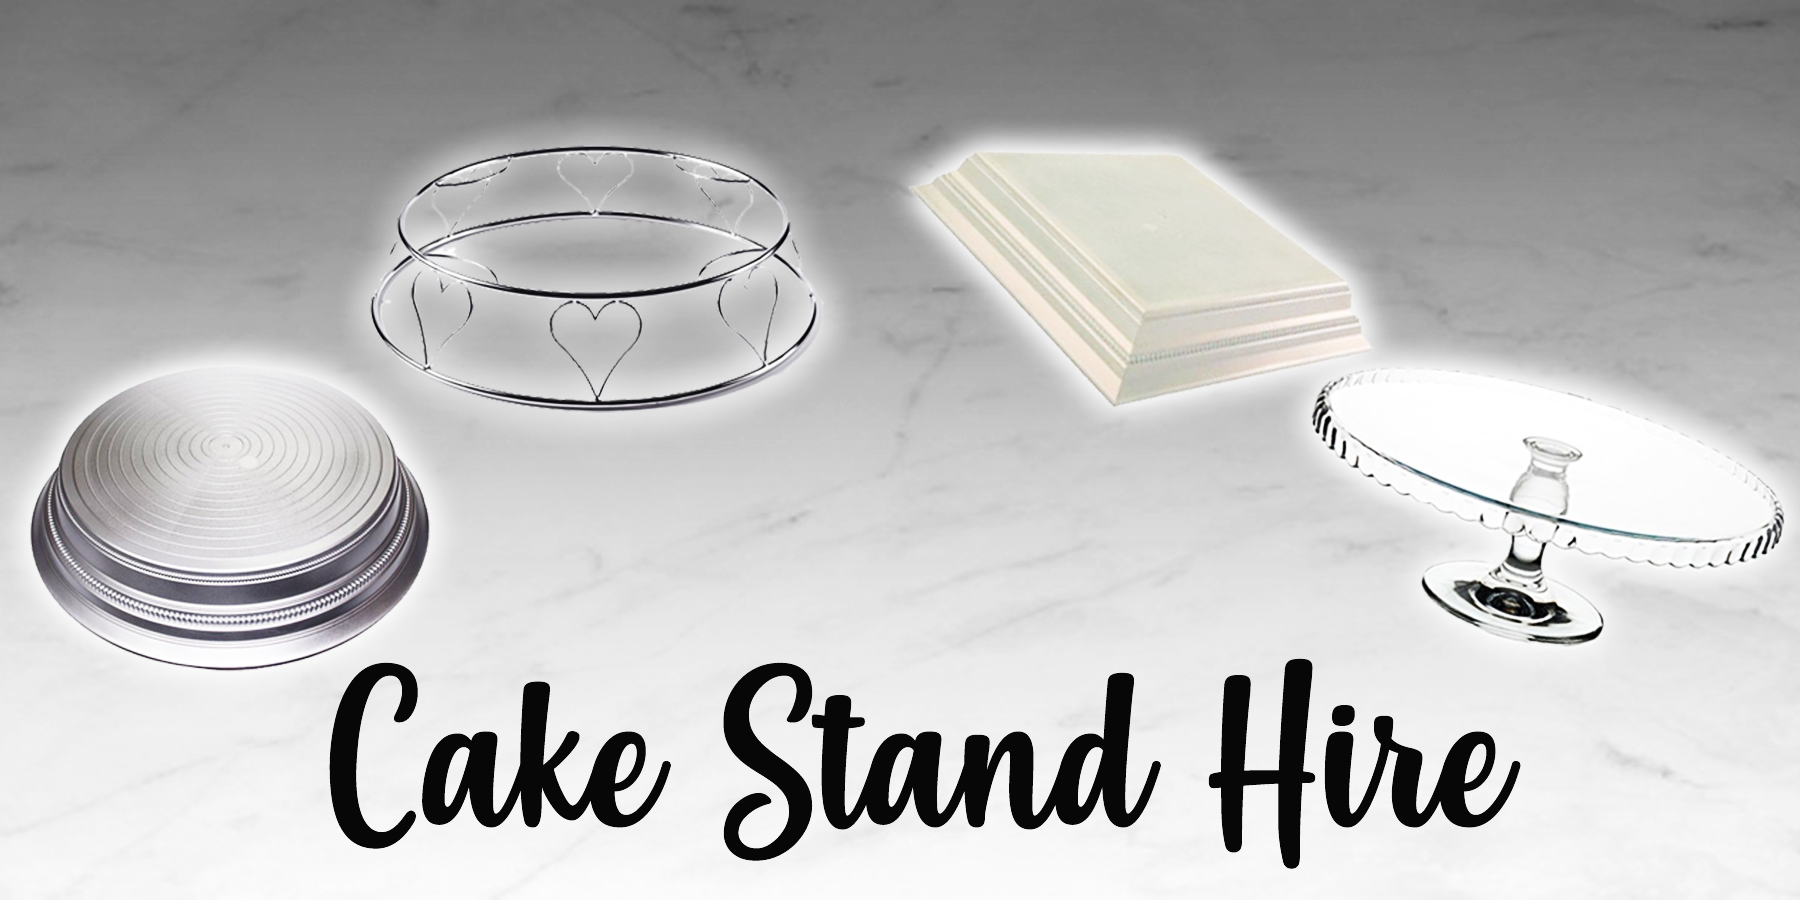 Cake stand hire from our shop